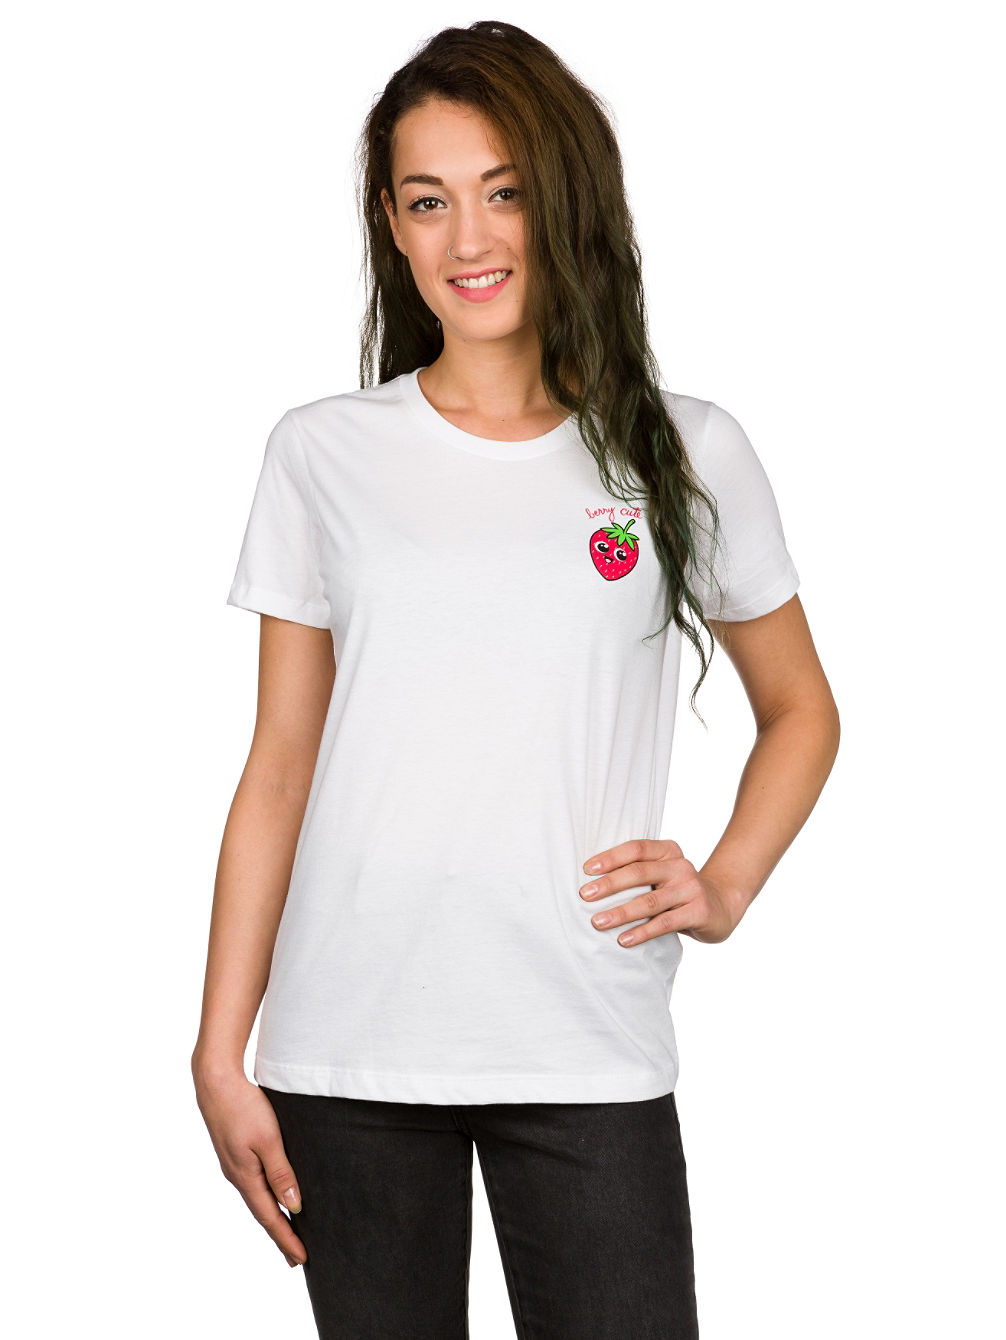 Berry Cute T-Shirt